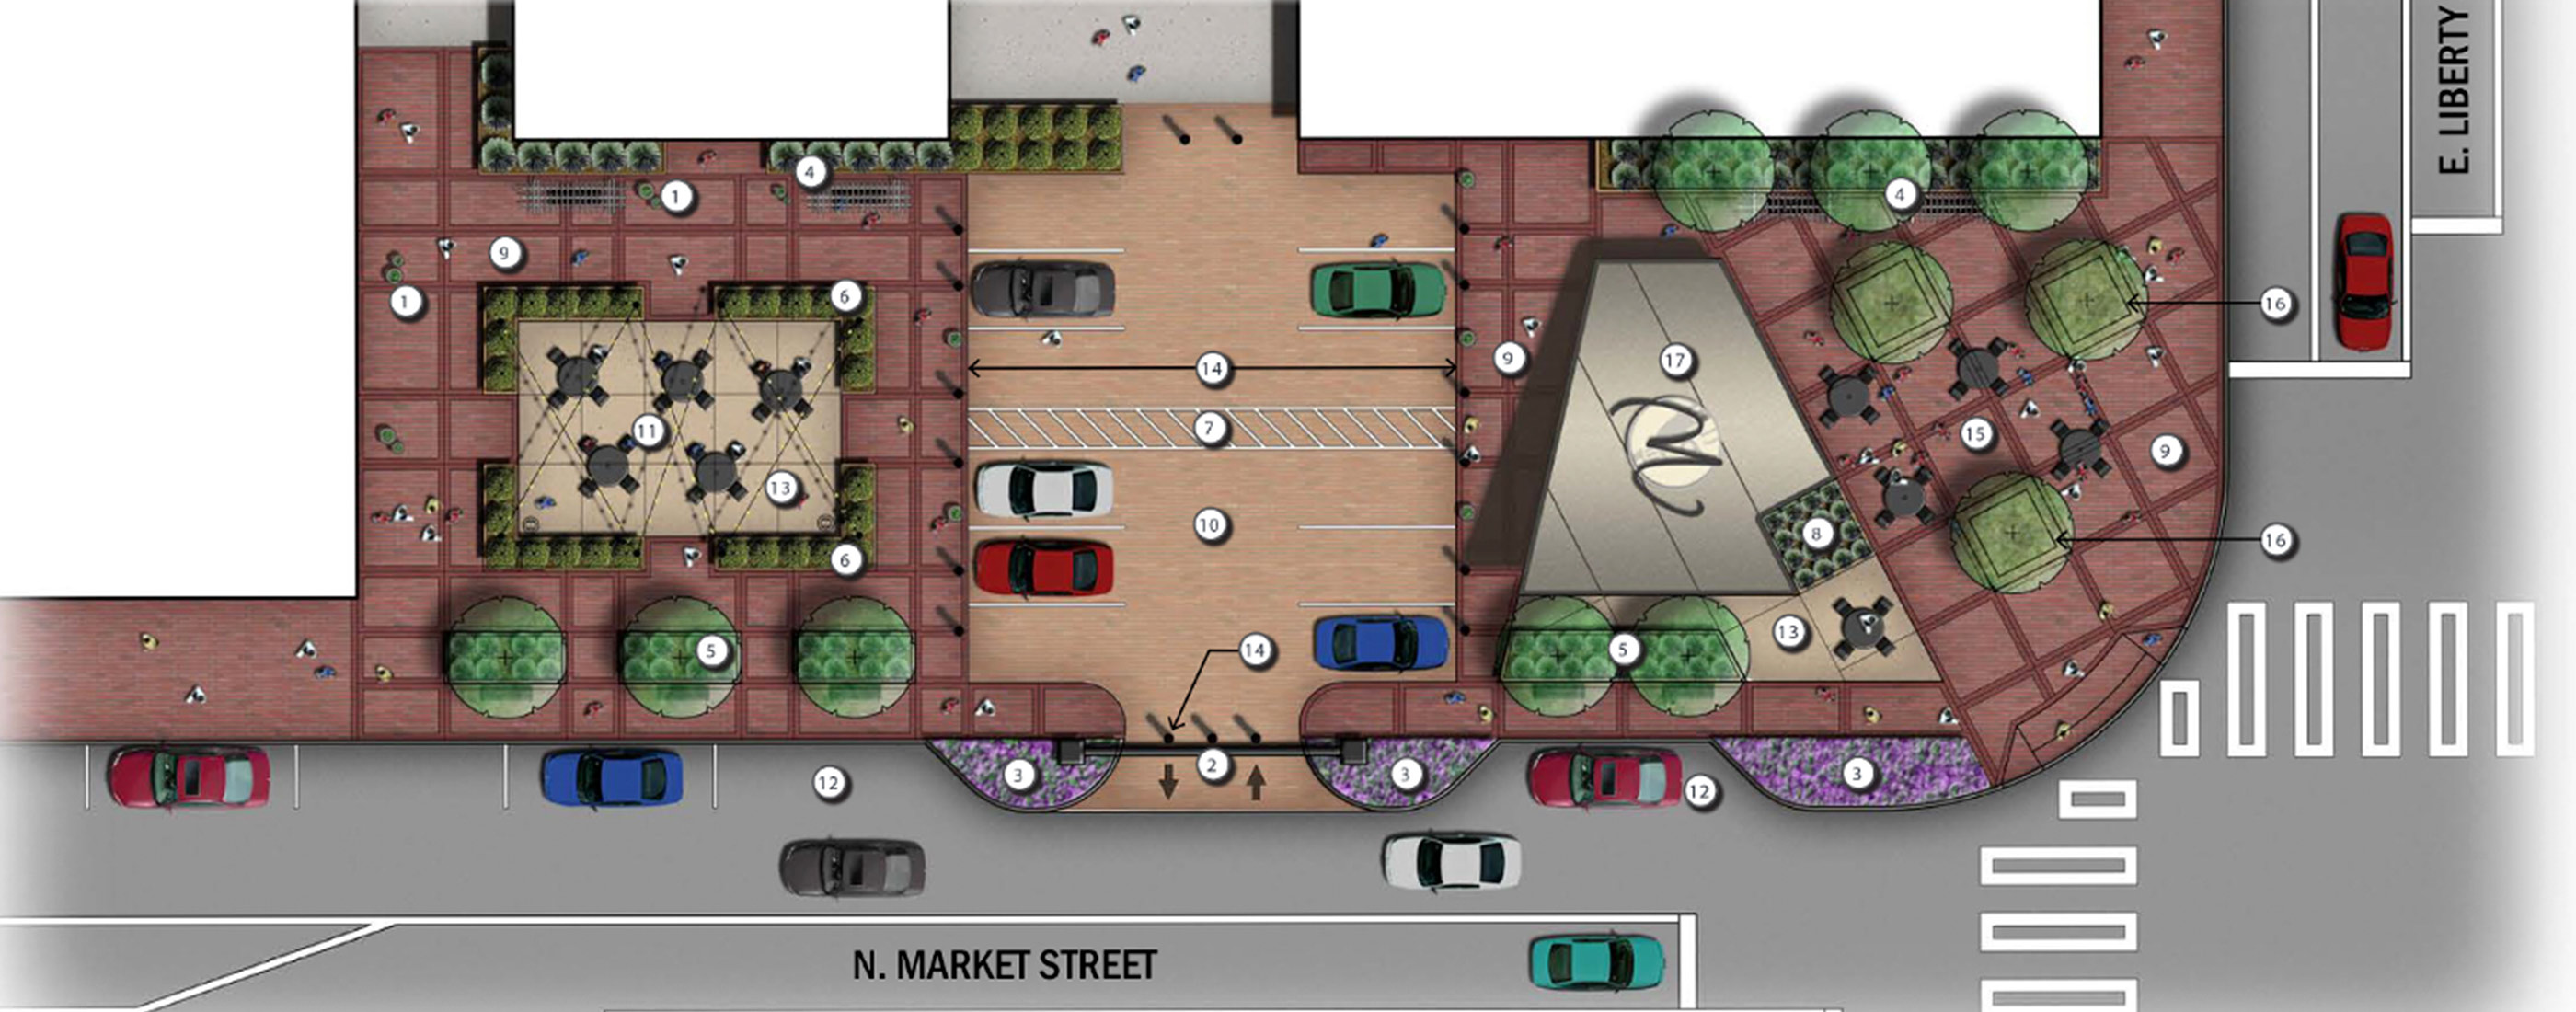 A rendering of Downtown Wooster, Ohio's N. Market Street streetscape improvements.